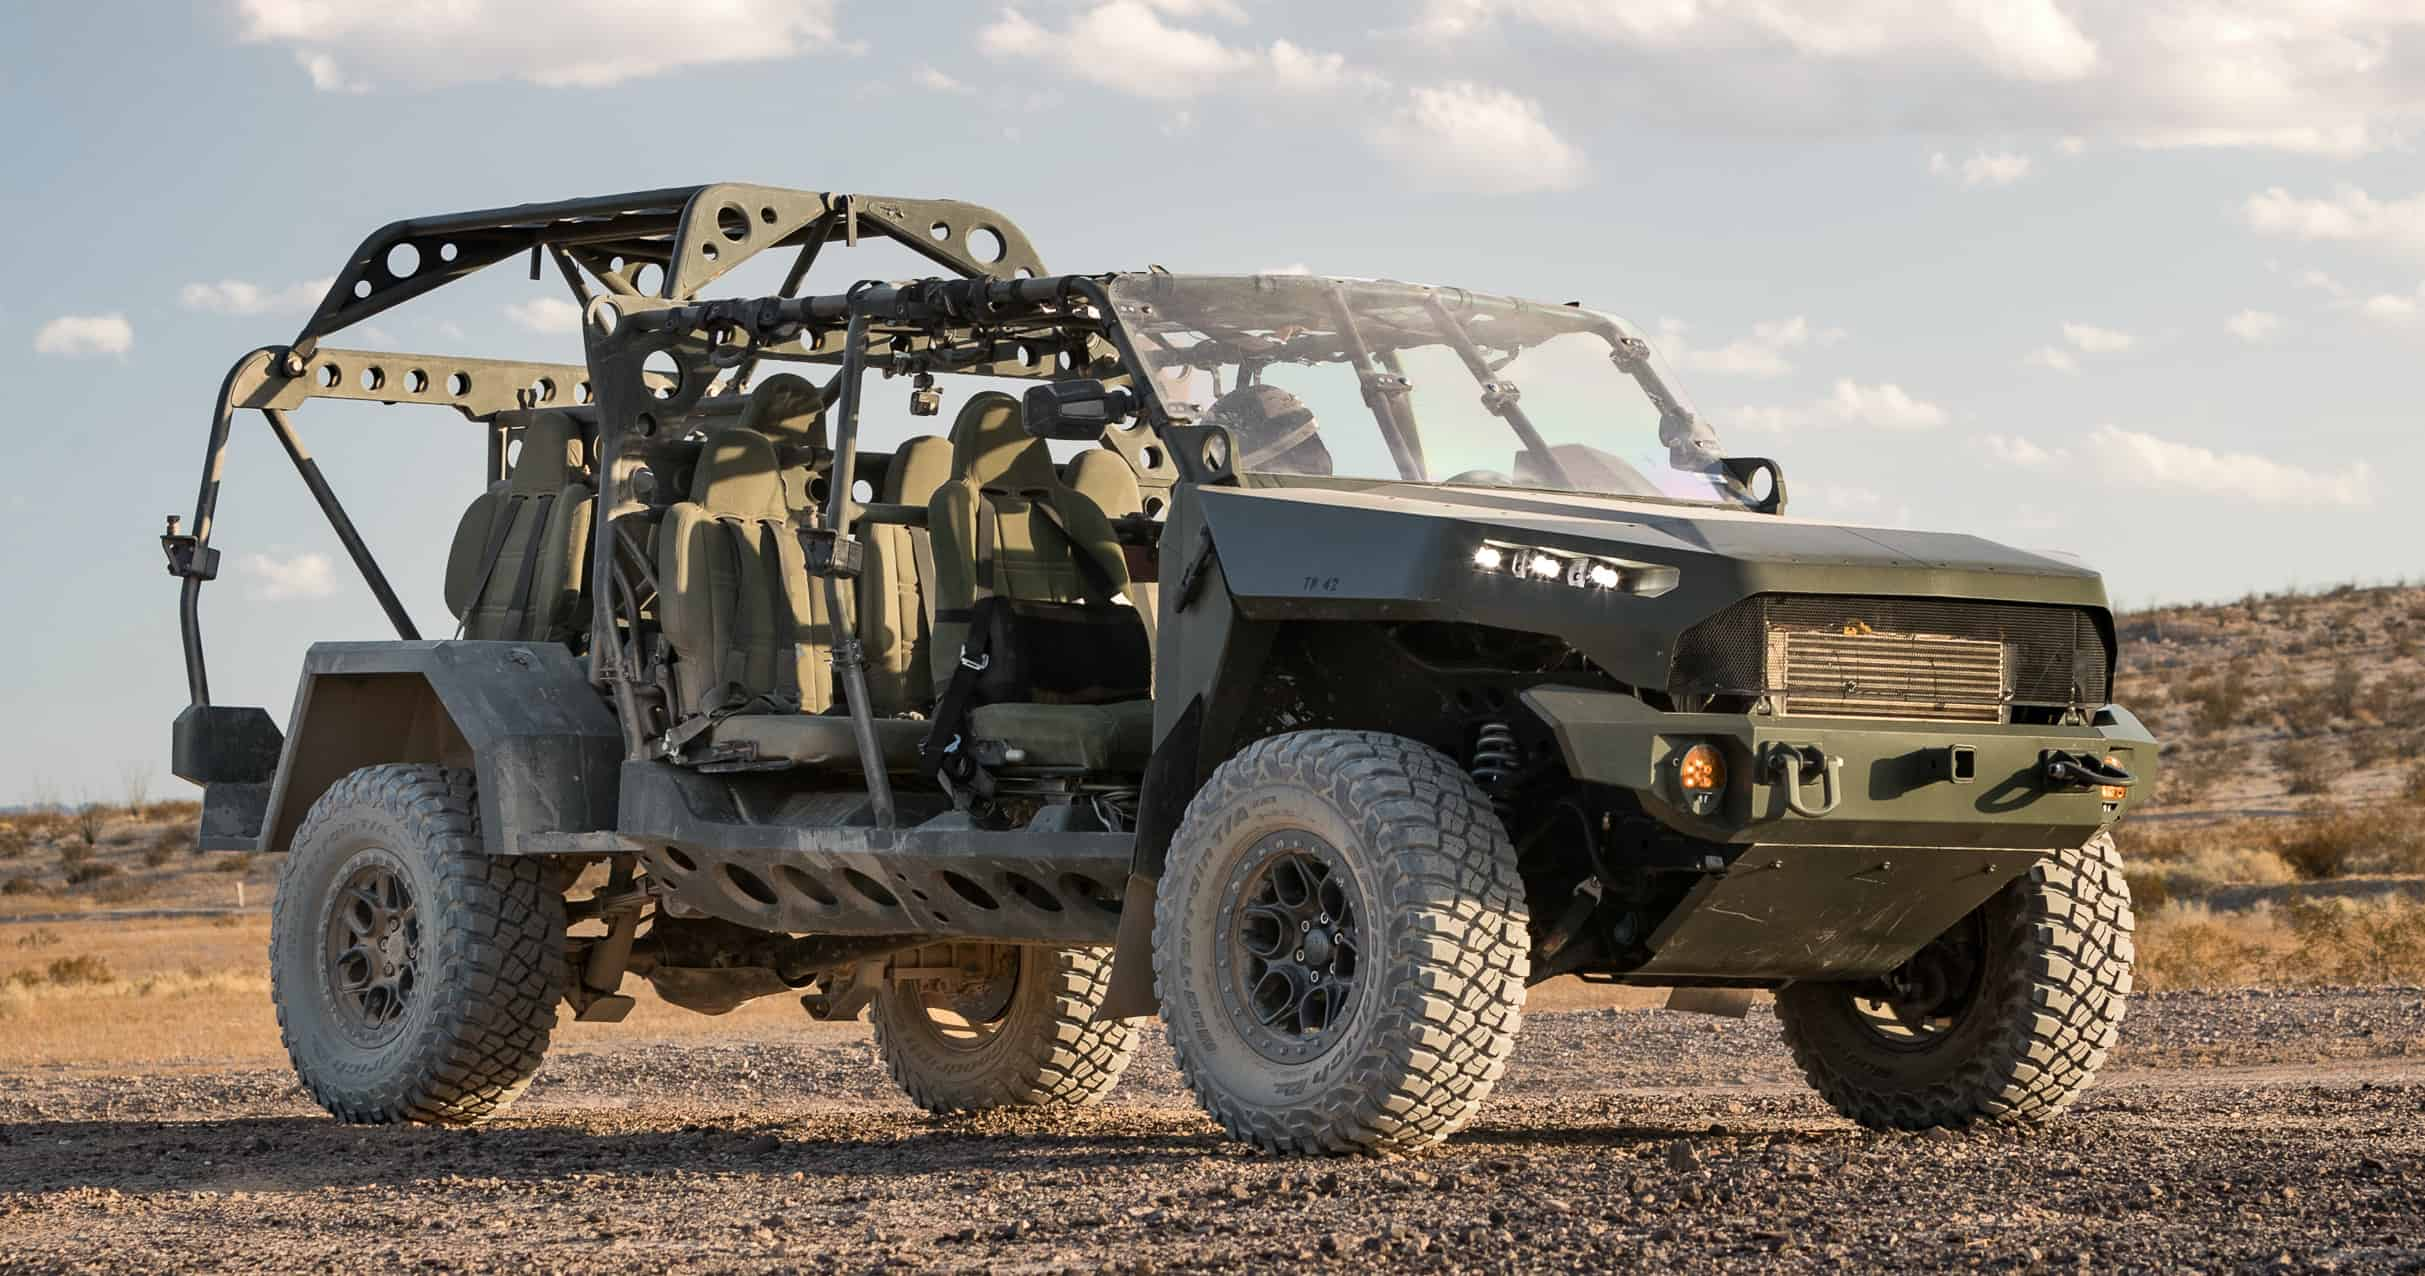 Army vehicles, GM will build Army vehicles based on Colorado ZR2 pickup platform, ClassicCars.com Journal